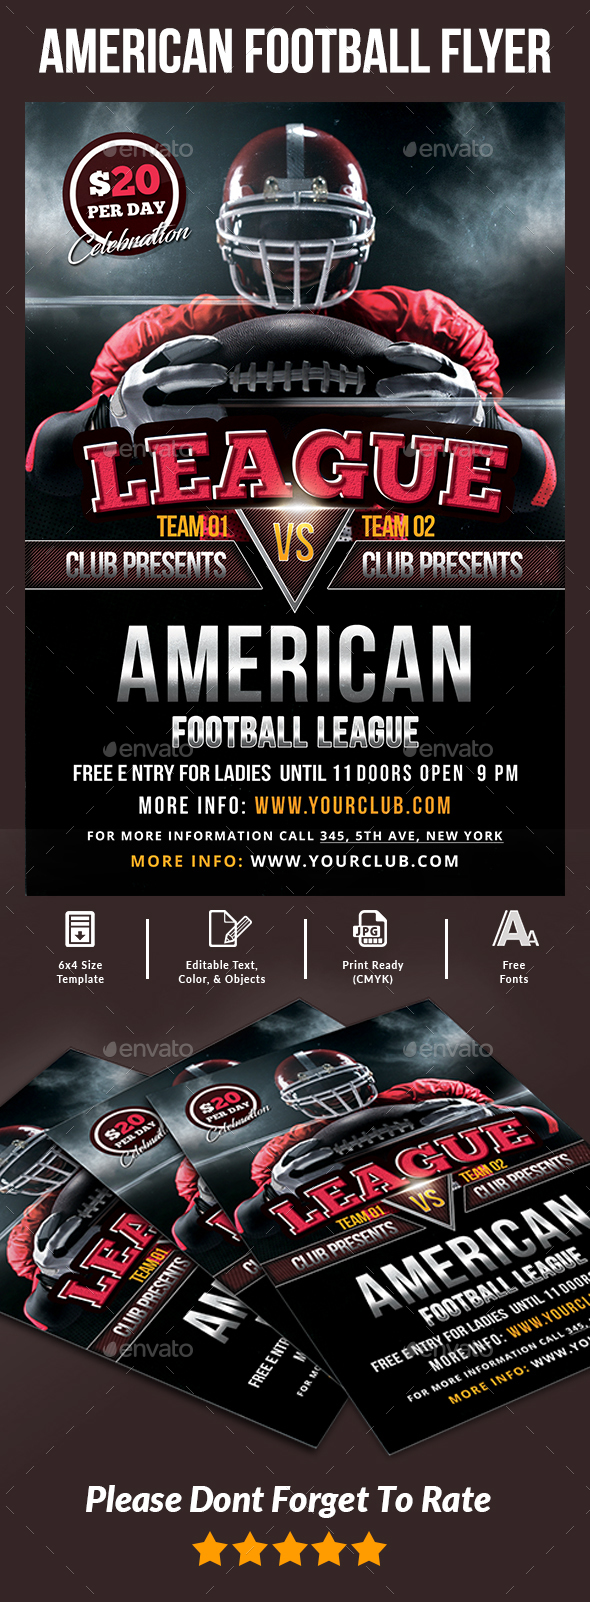 American Football Flyer - Events Flyers